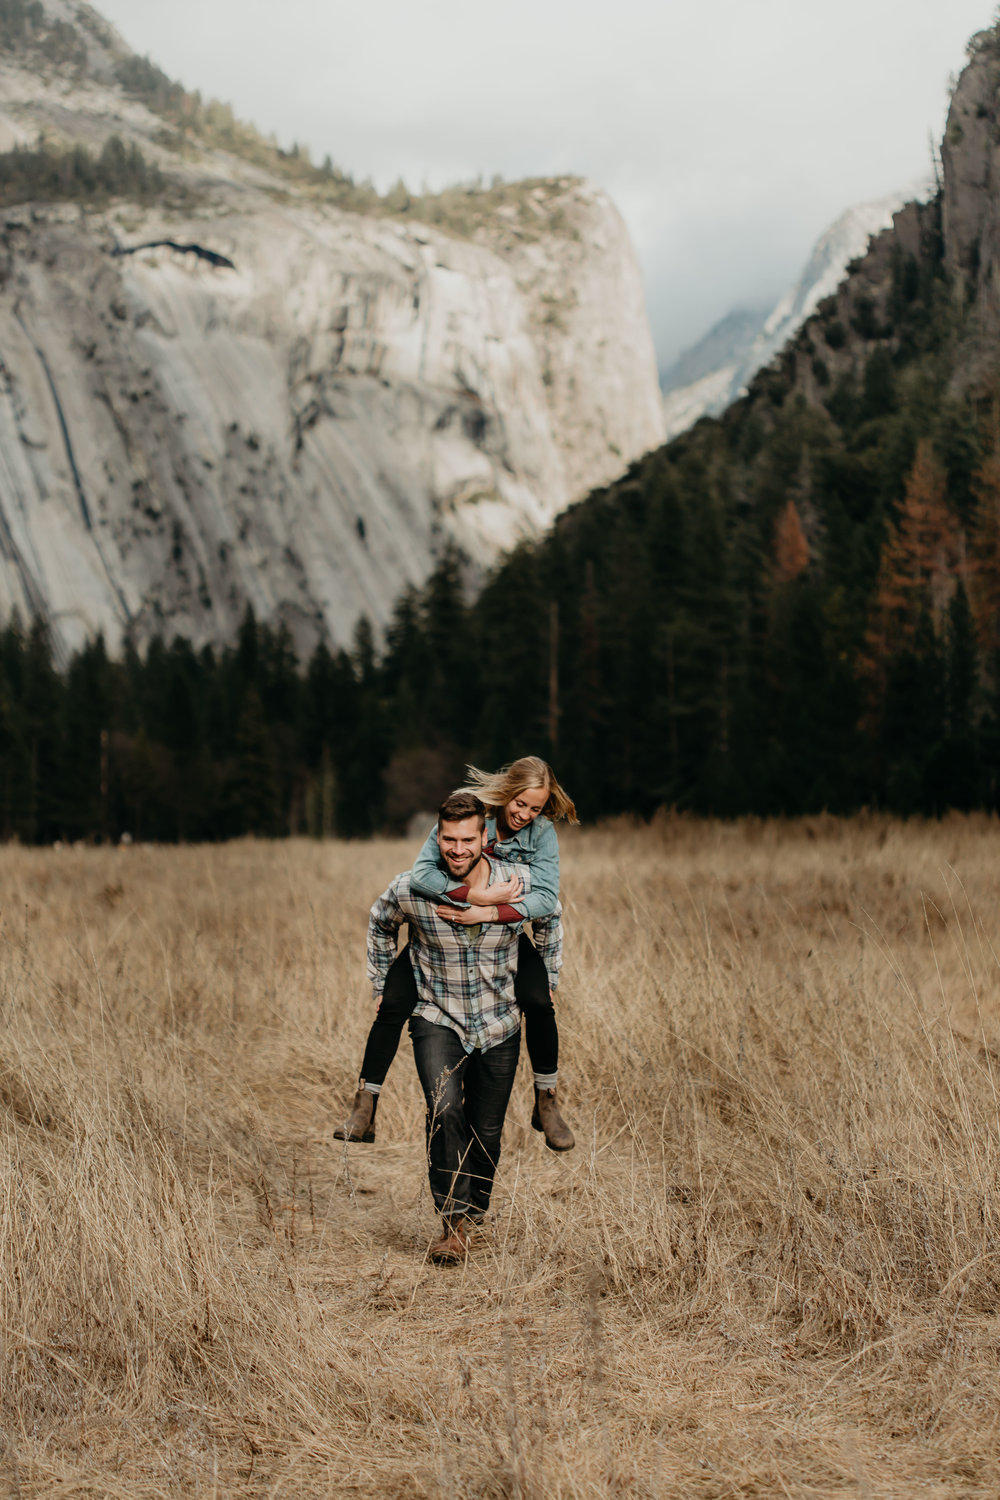 nicole-daacke-photography-yosemite-national-park-engagement-session-yosemite-valley-adventure-session-california-66.jpg